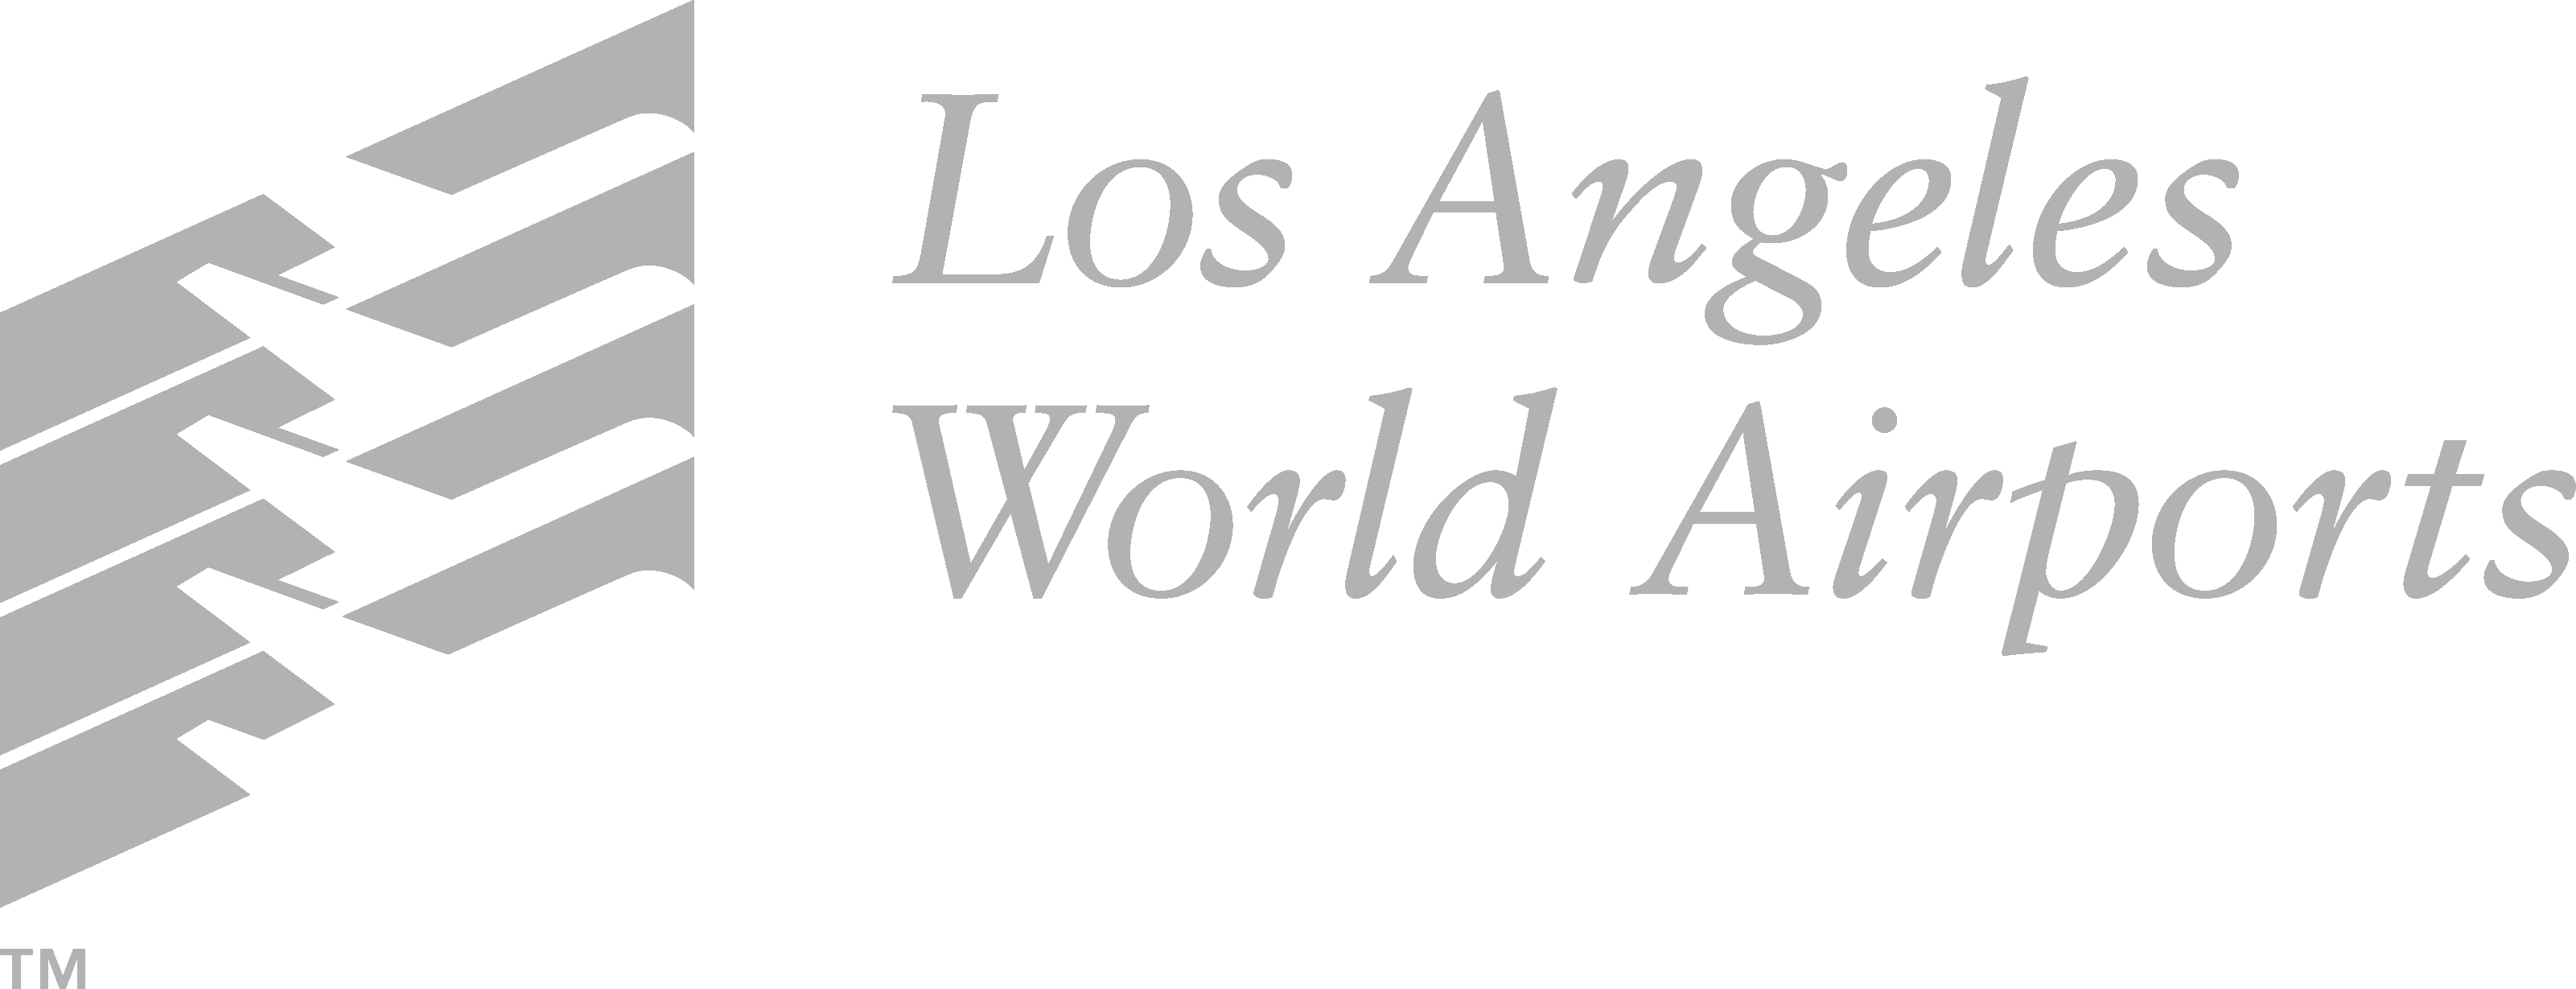 los-angeles-world-airports